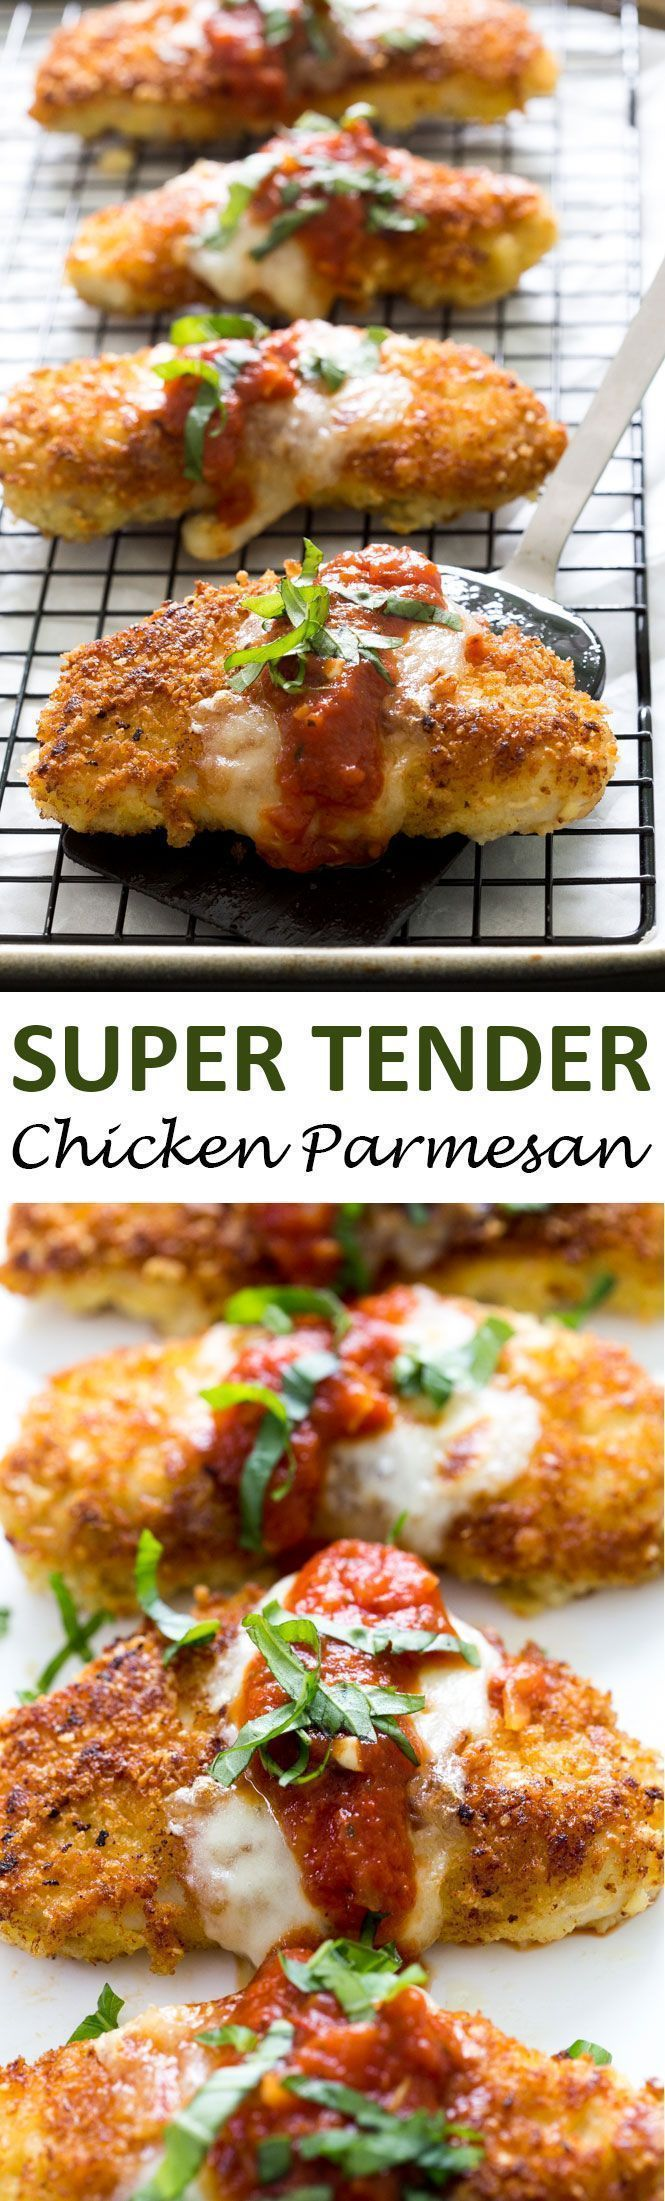 The BEST Chicken Parmesan. A quick and easy 30 minute weeknight meal everyone will love!